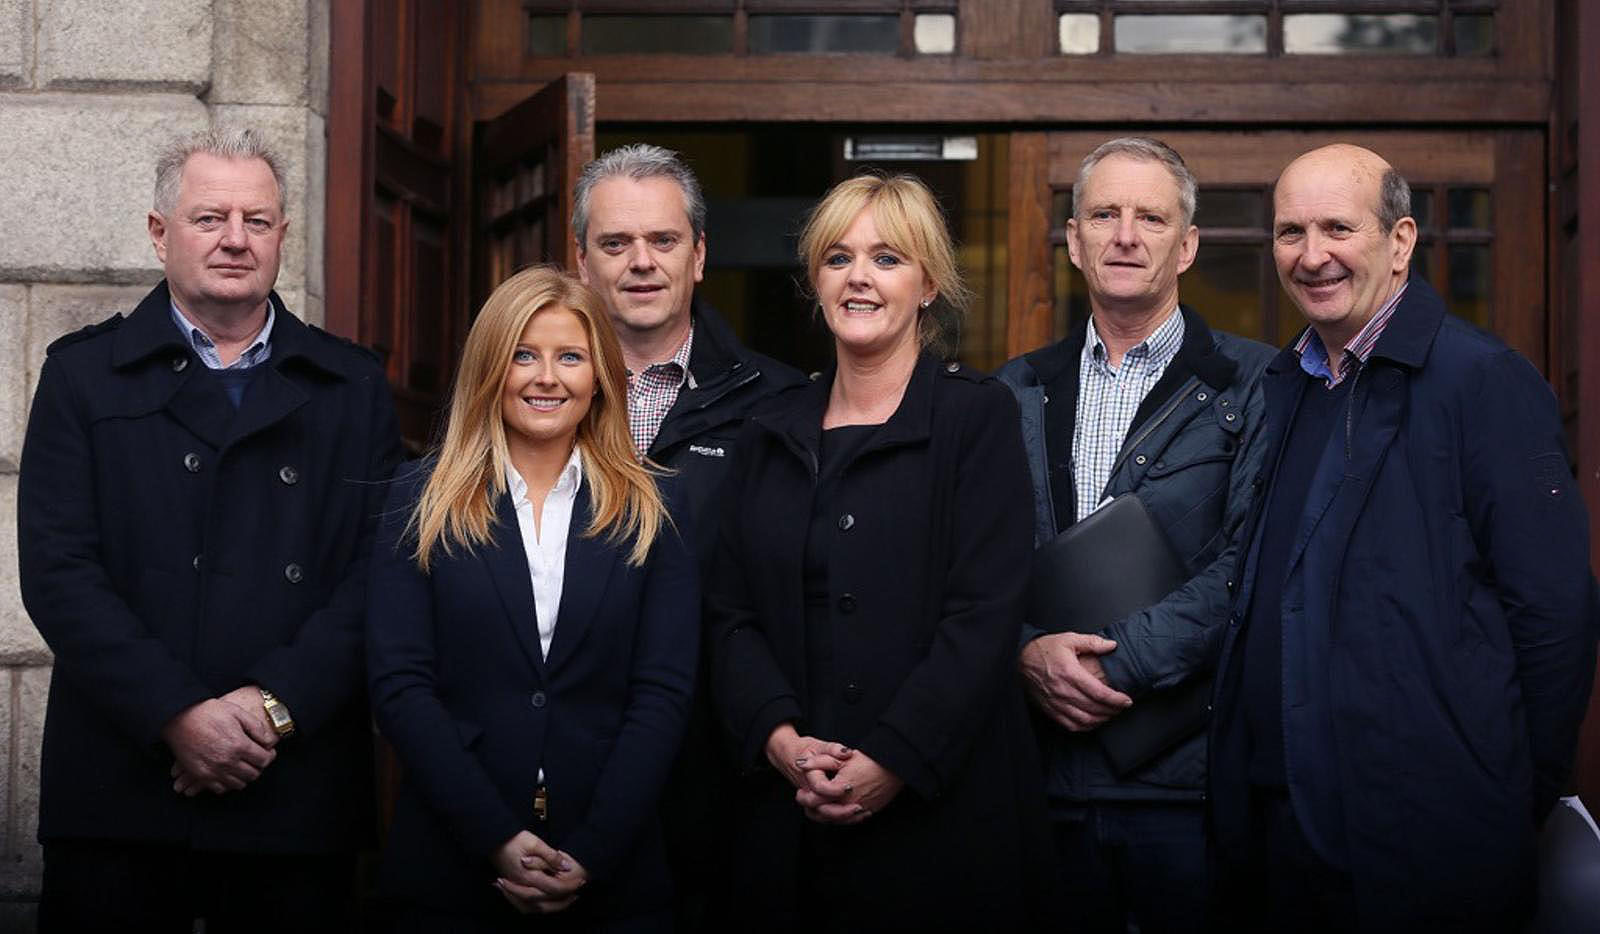 Pictured from left: Paul and Naomi Barlow (Dunmore East), Michael Crowley (Killinick, Co Wexford); Portlaw native Niamh White (O'Shea White & Co, Killarney); Gerard Kelly, (Greencastle, Co Donegal) and Alex McCarthy (Kildimo, Co Limerick) pictured outside the Supreme Court in Dublin after the judgement hearing.